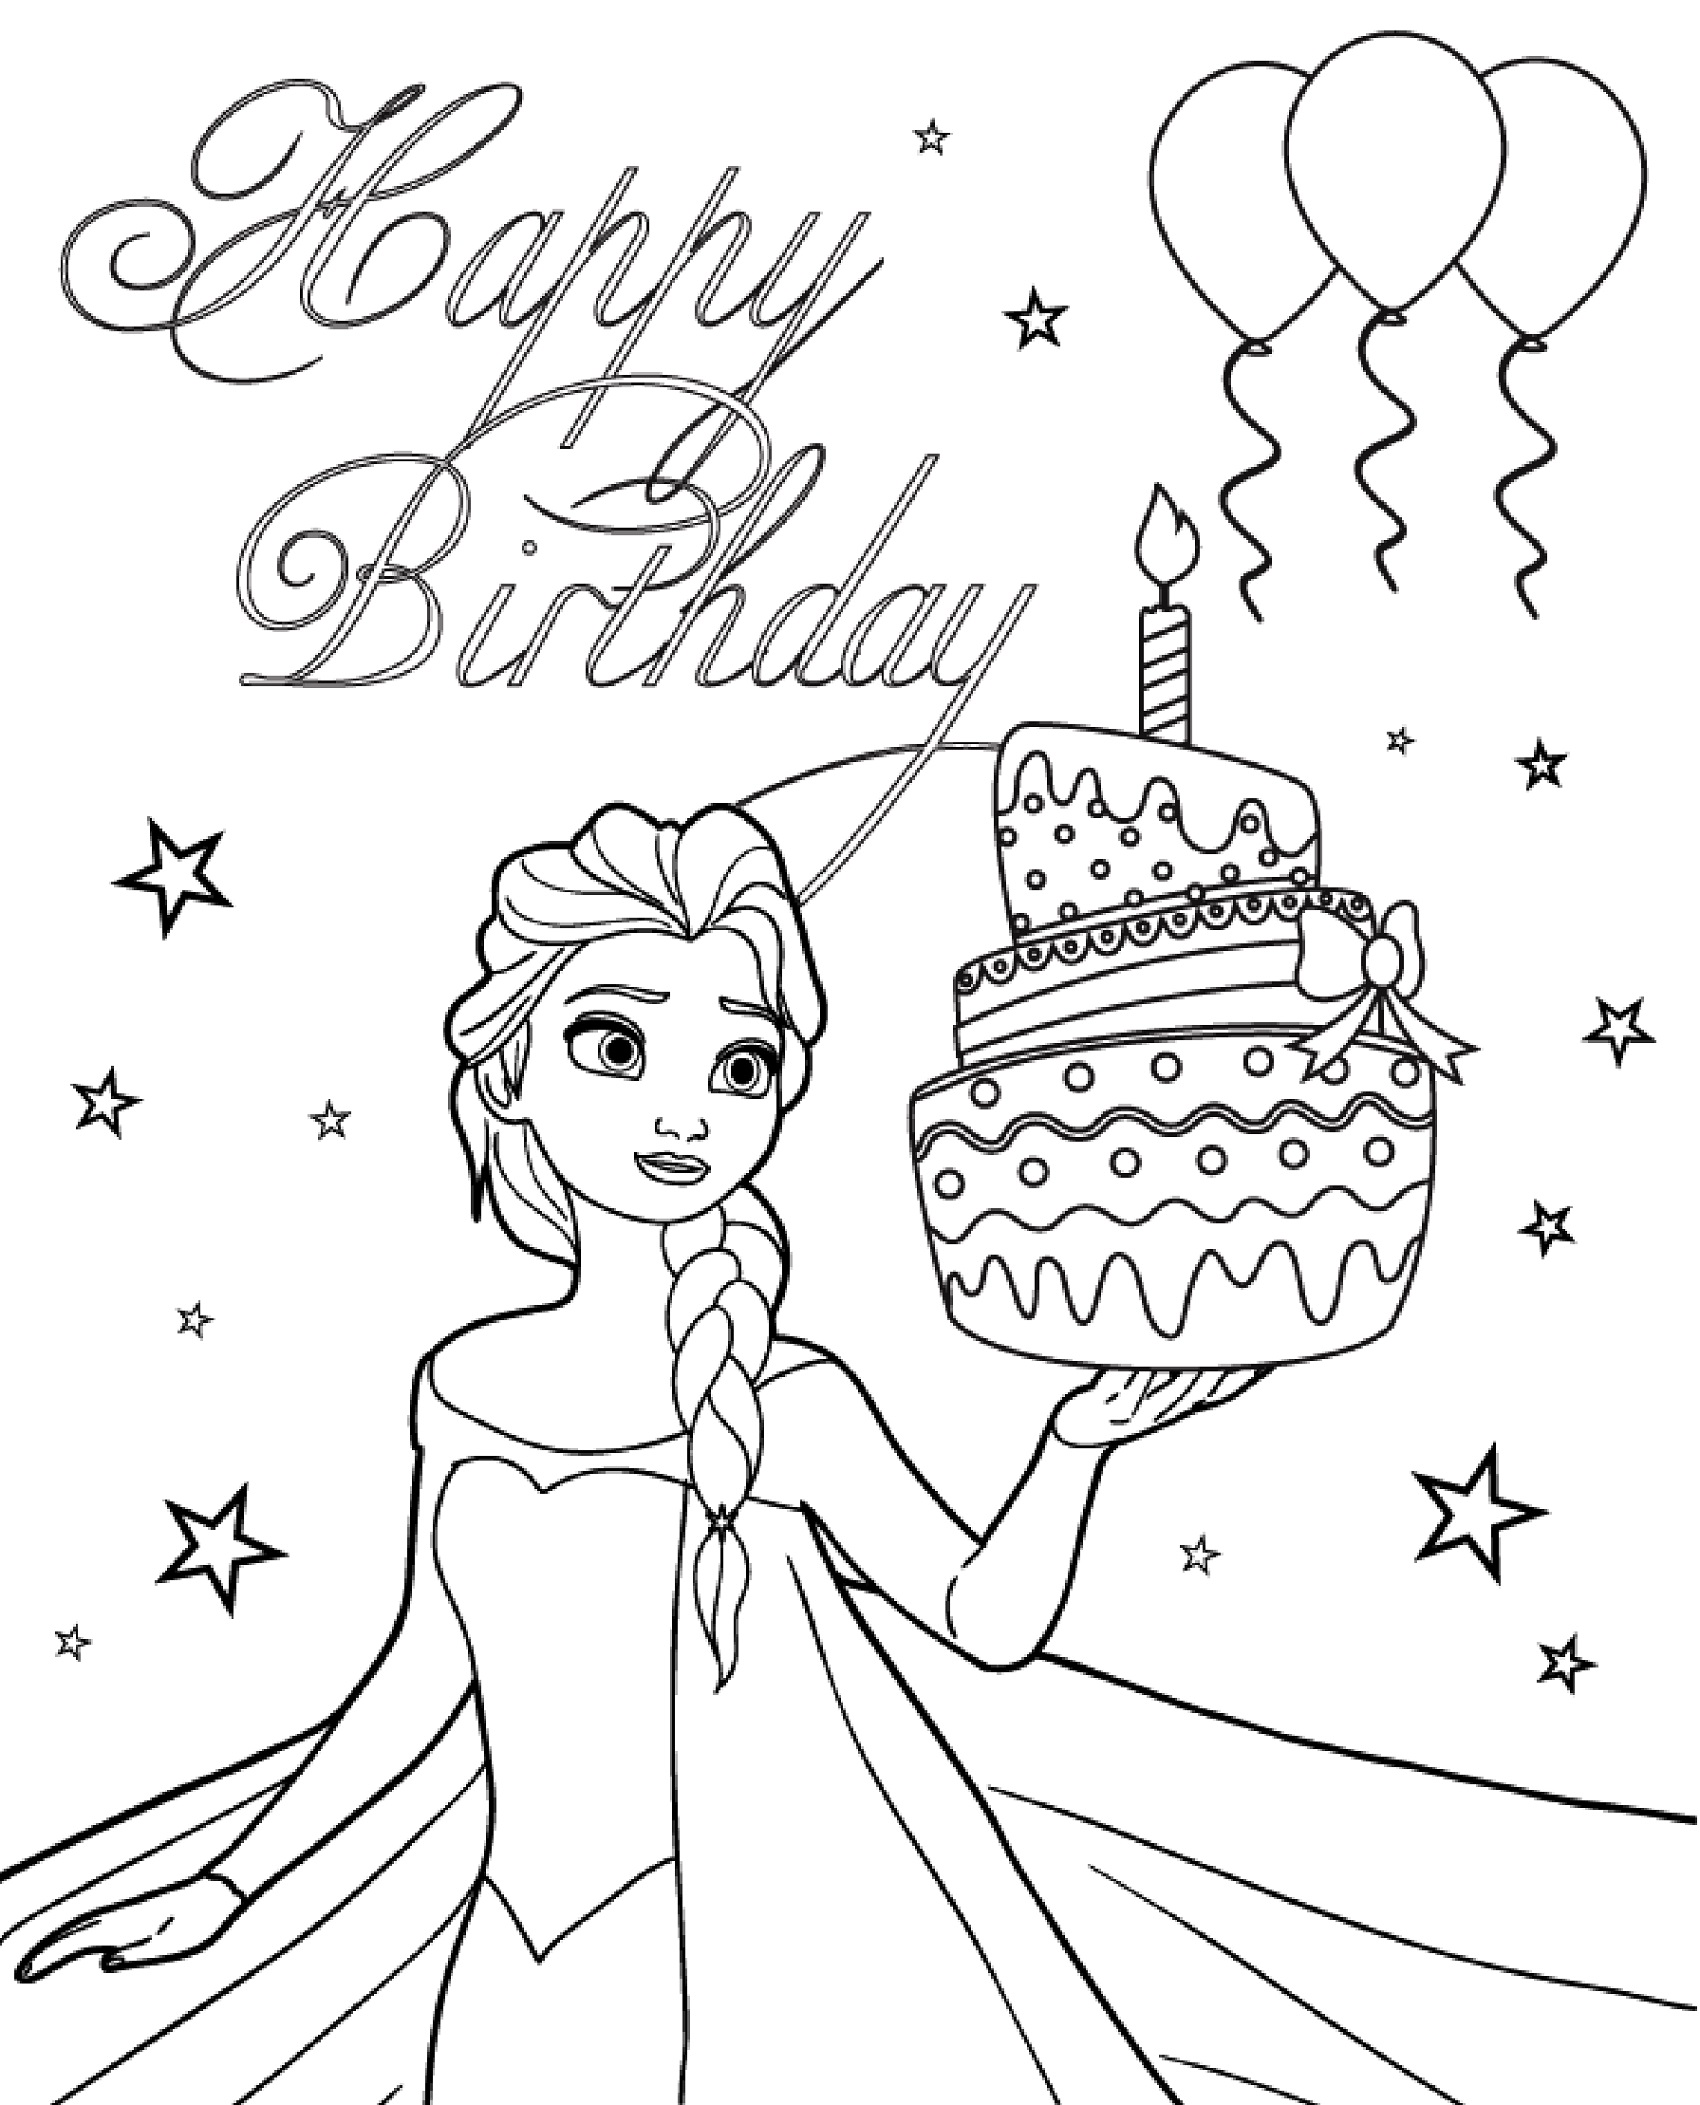 Printable Birthday Card Coloring Pages | 101 Activity